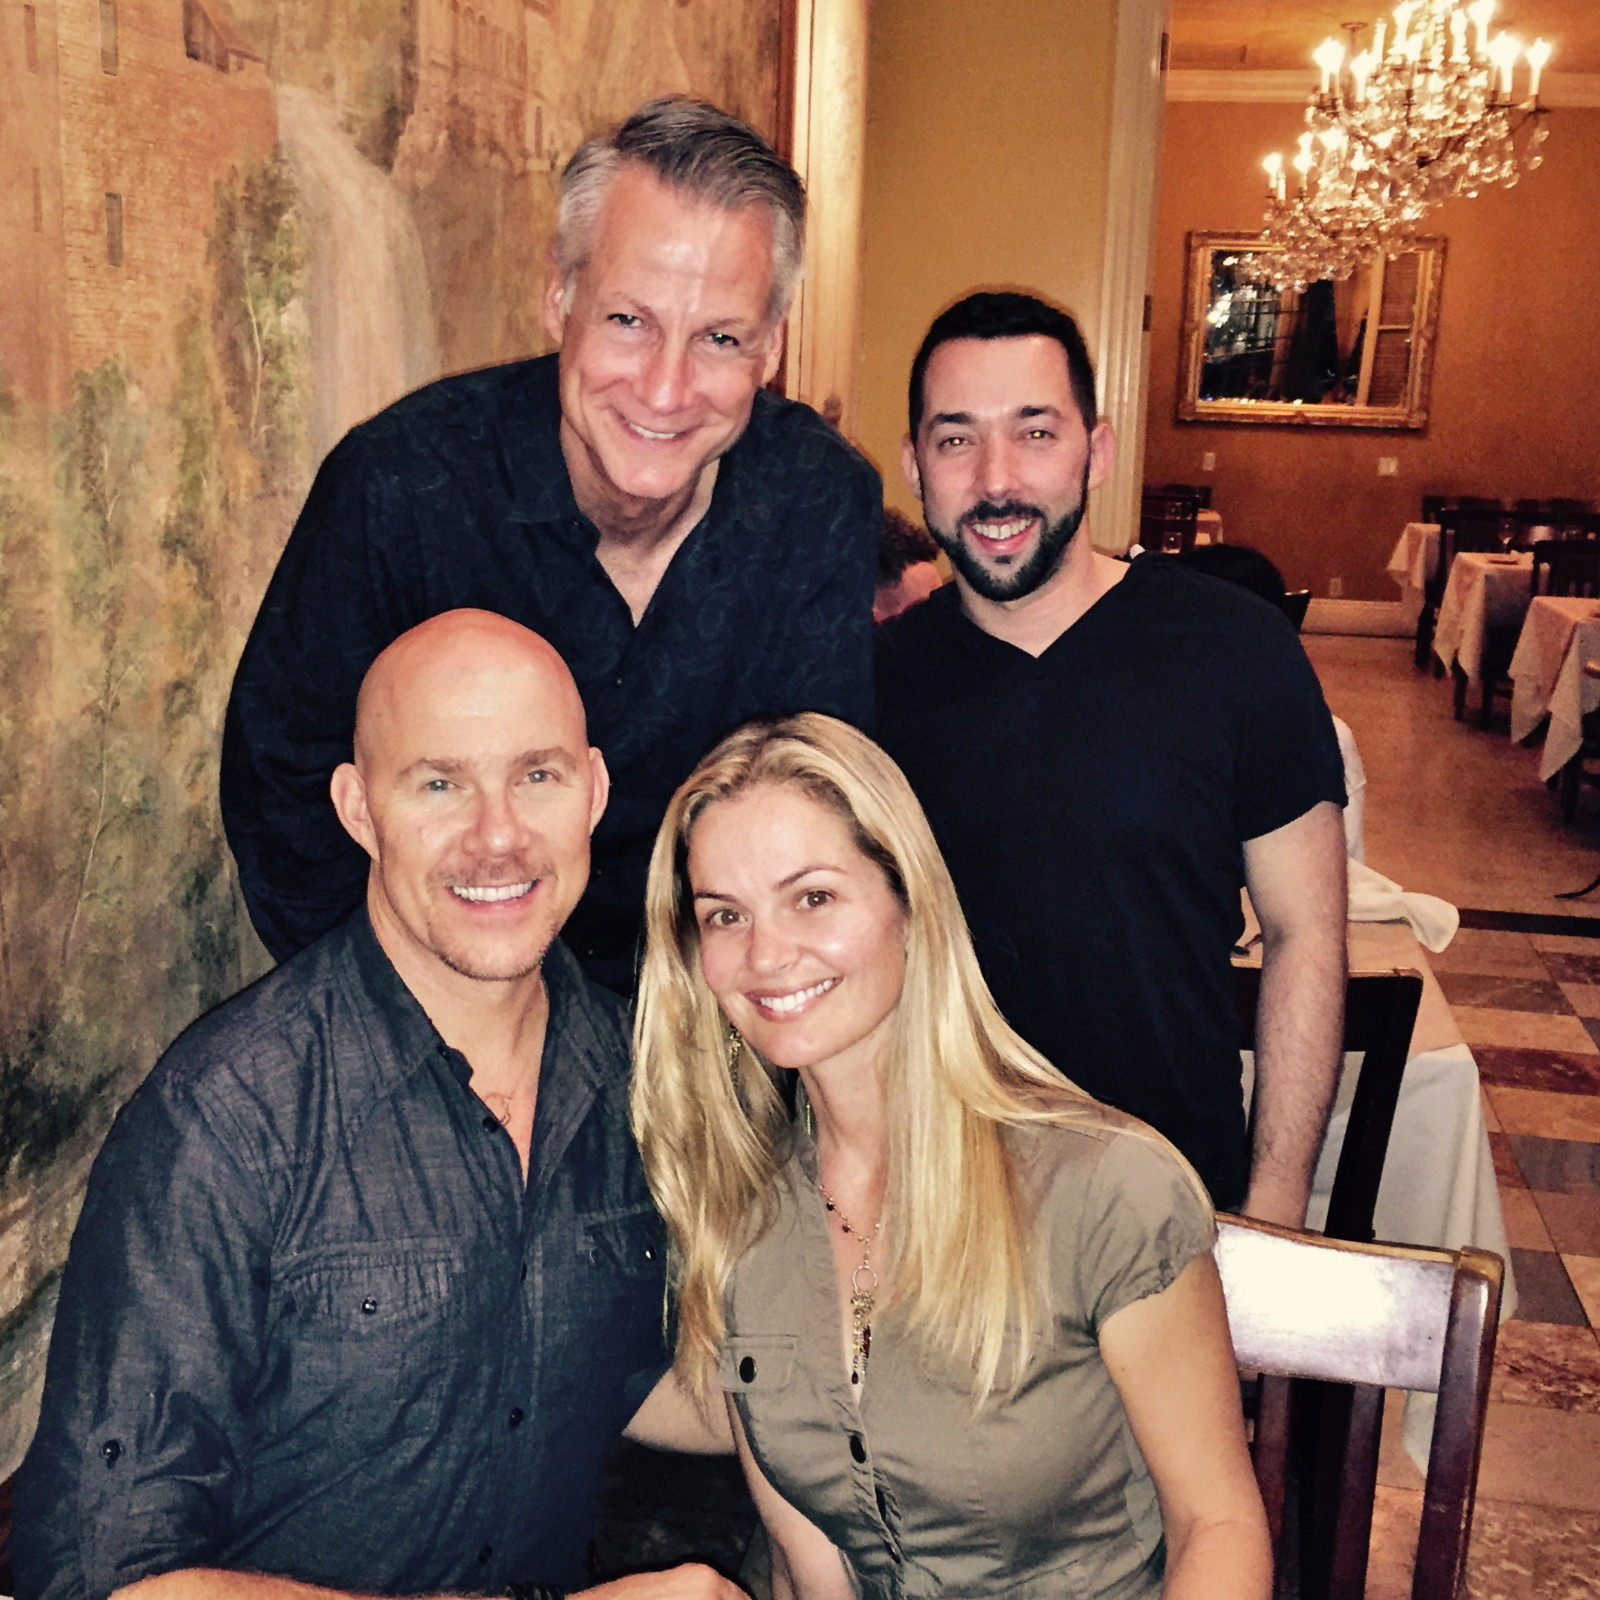 Todd with Carrie Schroeder, Michael Nicklin and Steven Le Vine